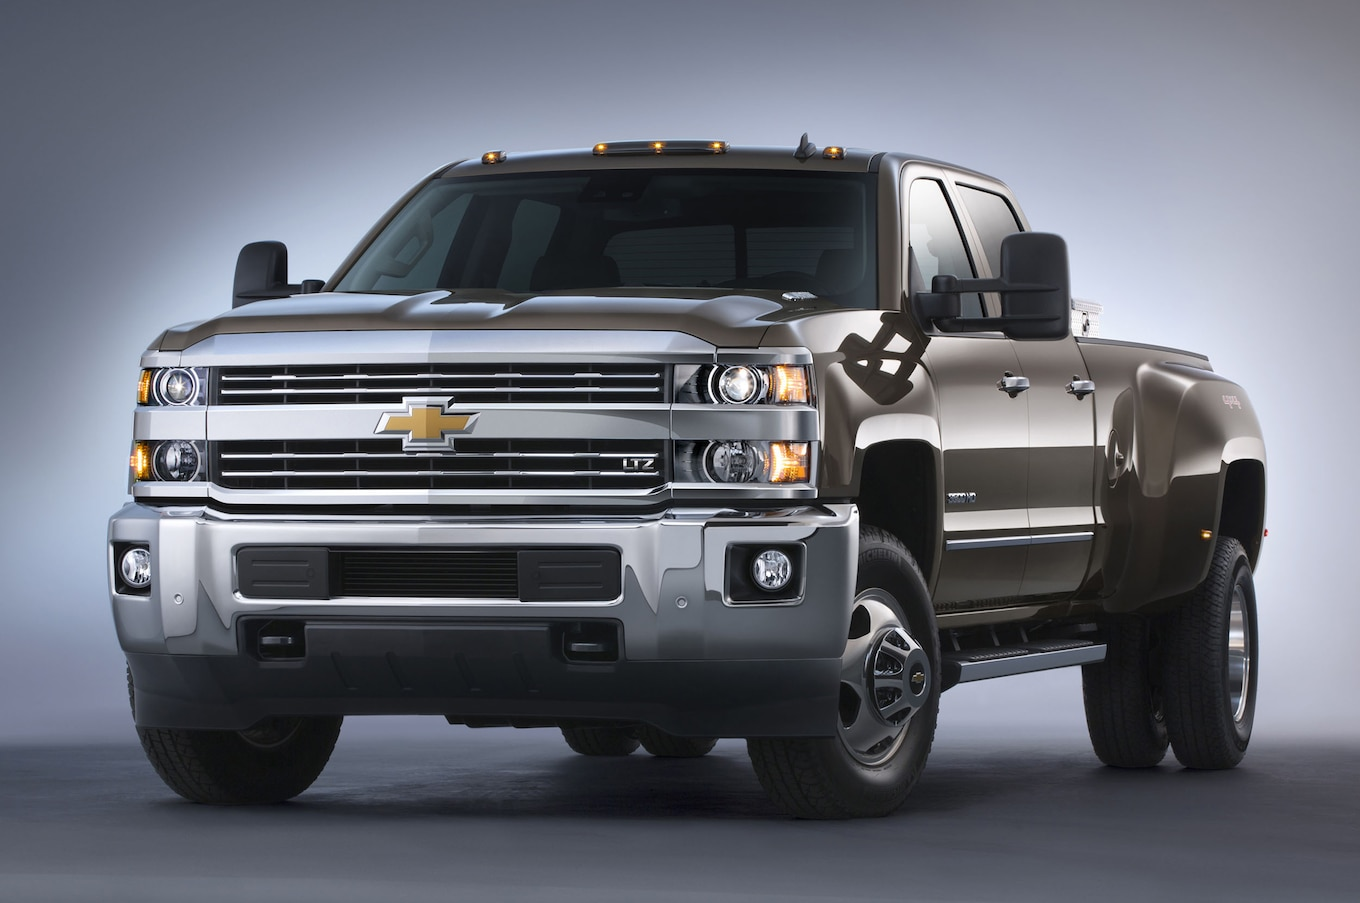 2015 Chevrolet Silverado 3500hd Reviews And Rating  Motor